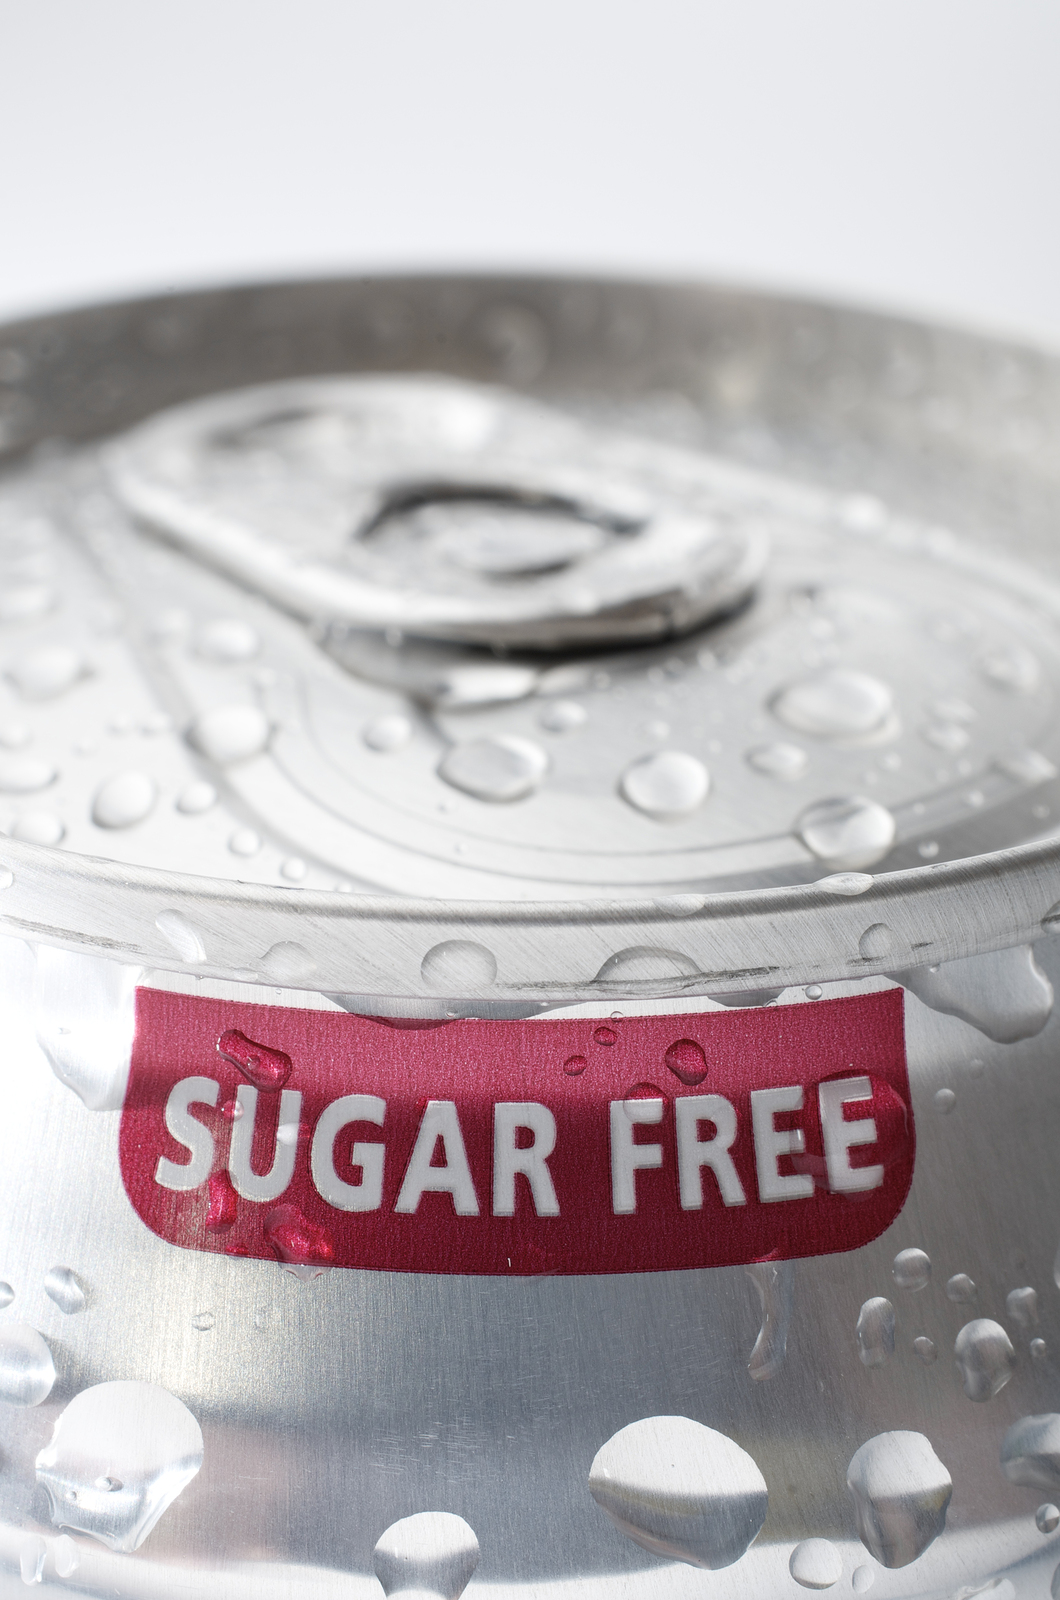 Sugar free diet and foods health